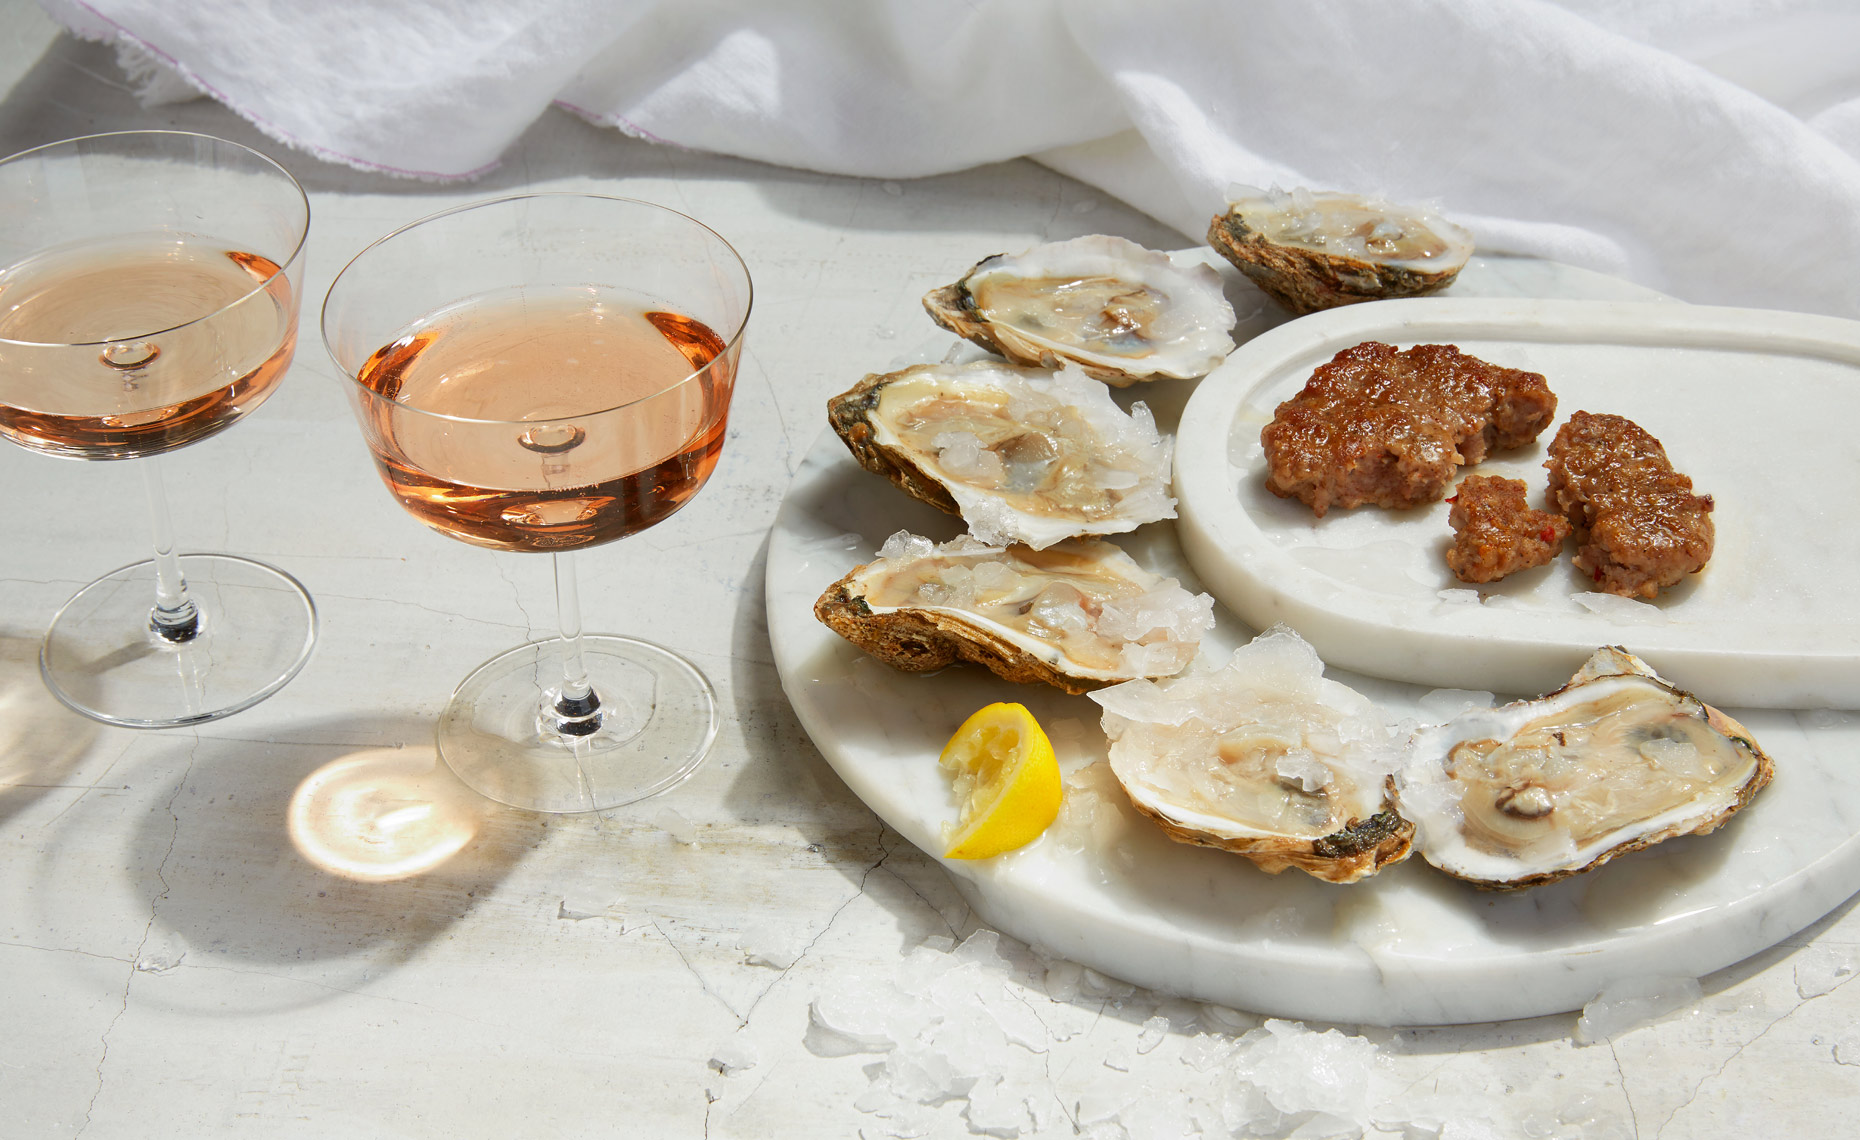 Marx_Food_photography_pork_oysters_sausage_champagne